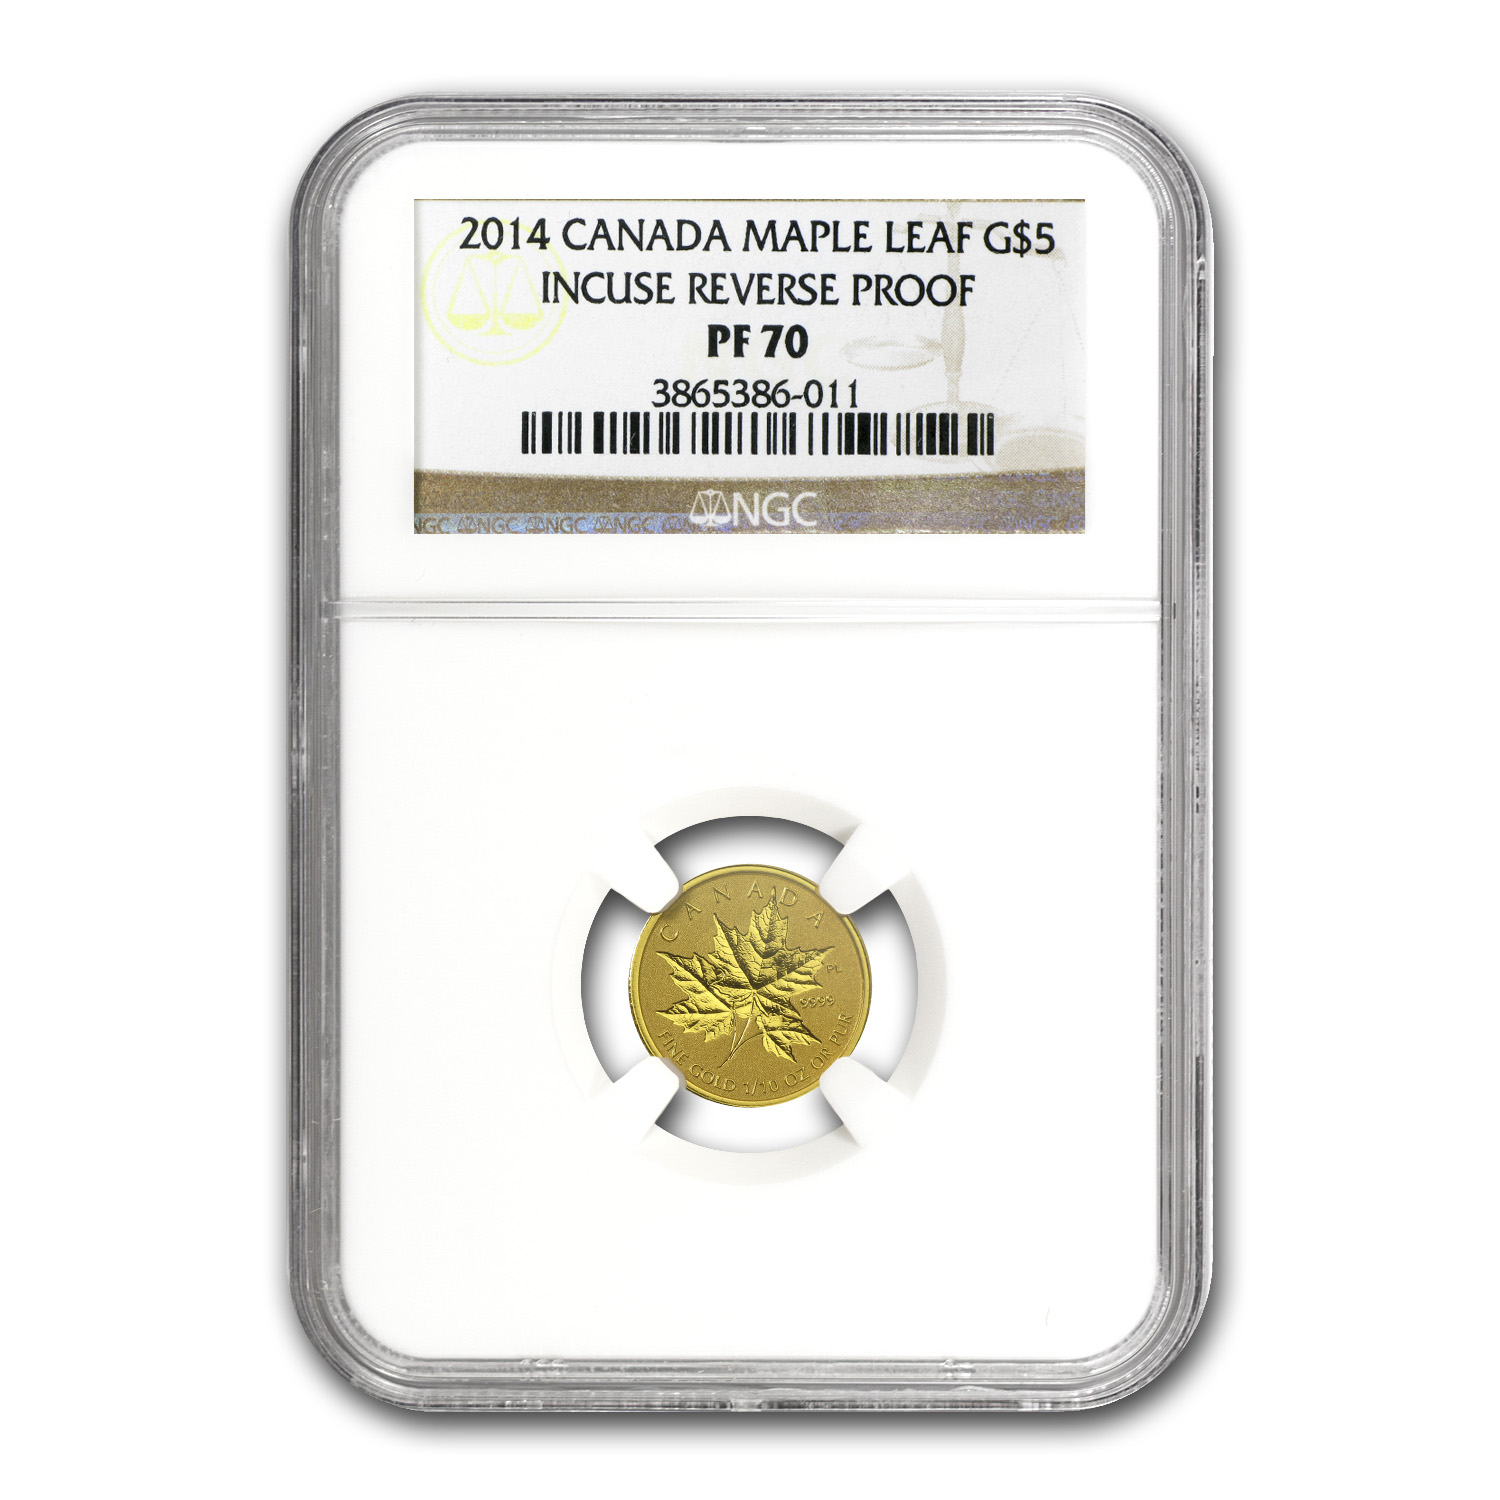 2014 Canada 1/10 oz Reverse Proof Gold Maple Leaf PF-70 NGC